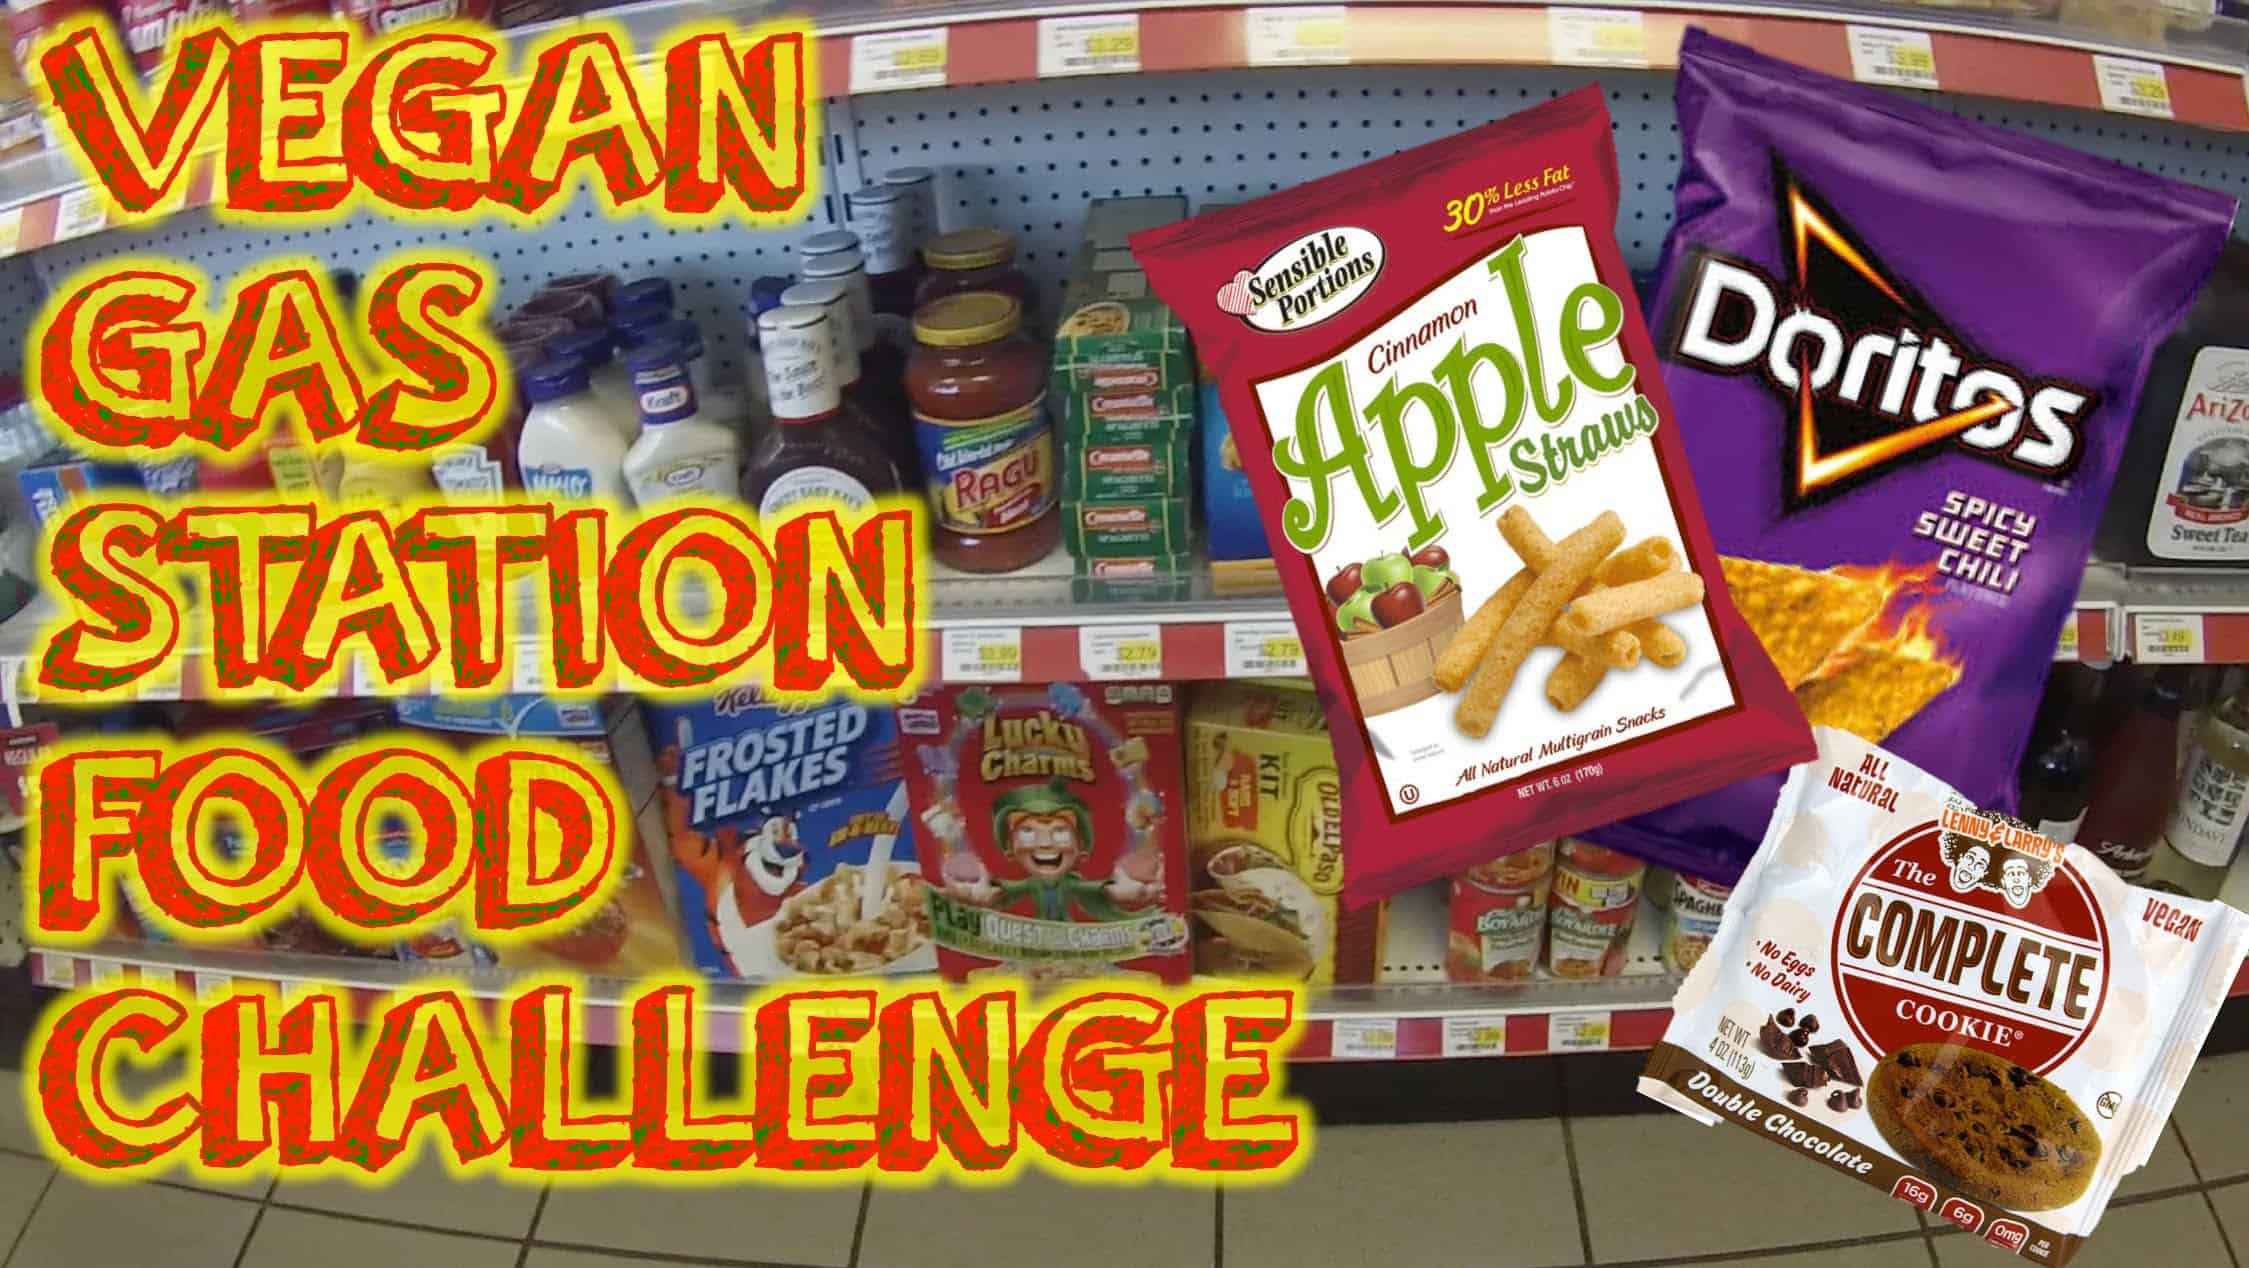 Healthy Gas Station Snacks  Vegan Gas Station Food Challenge